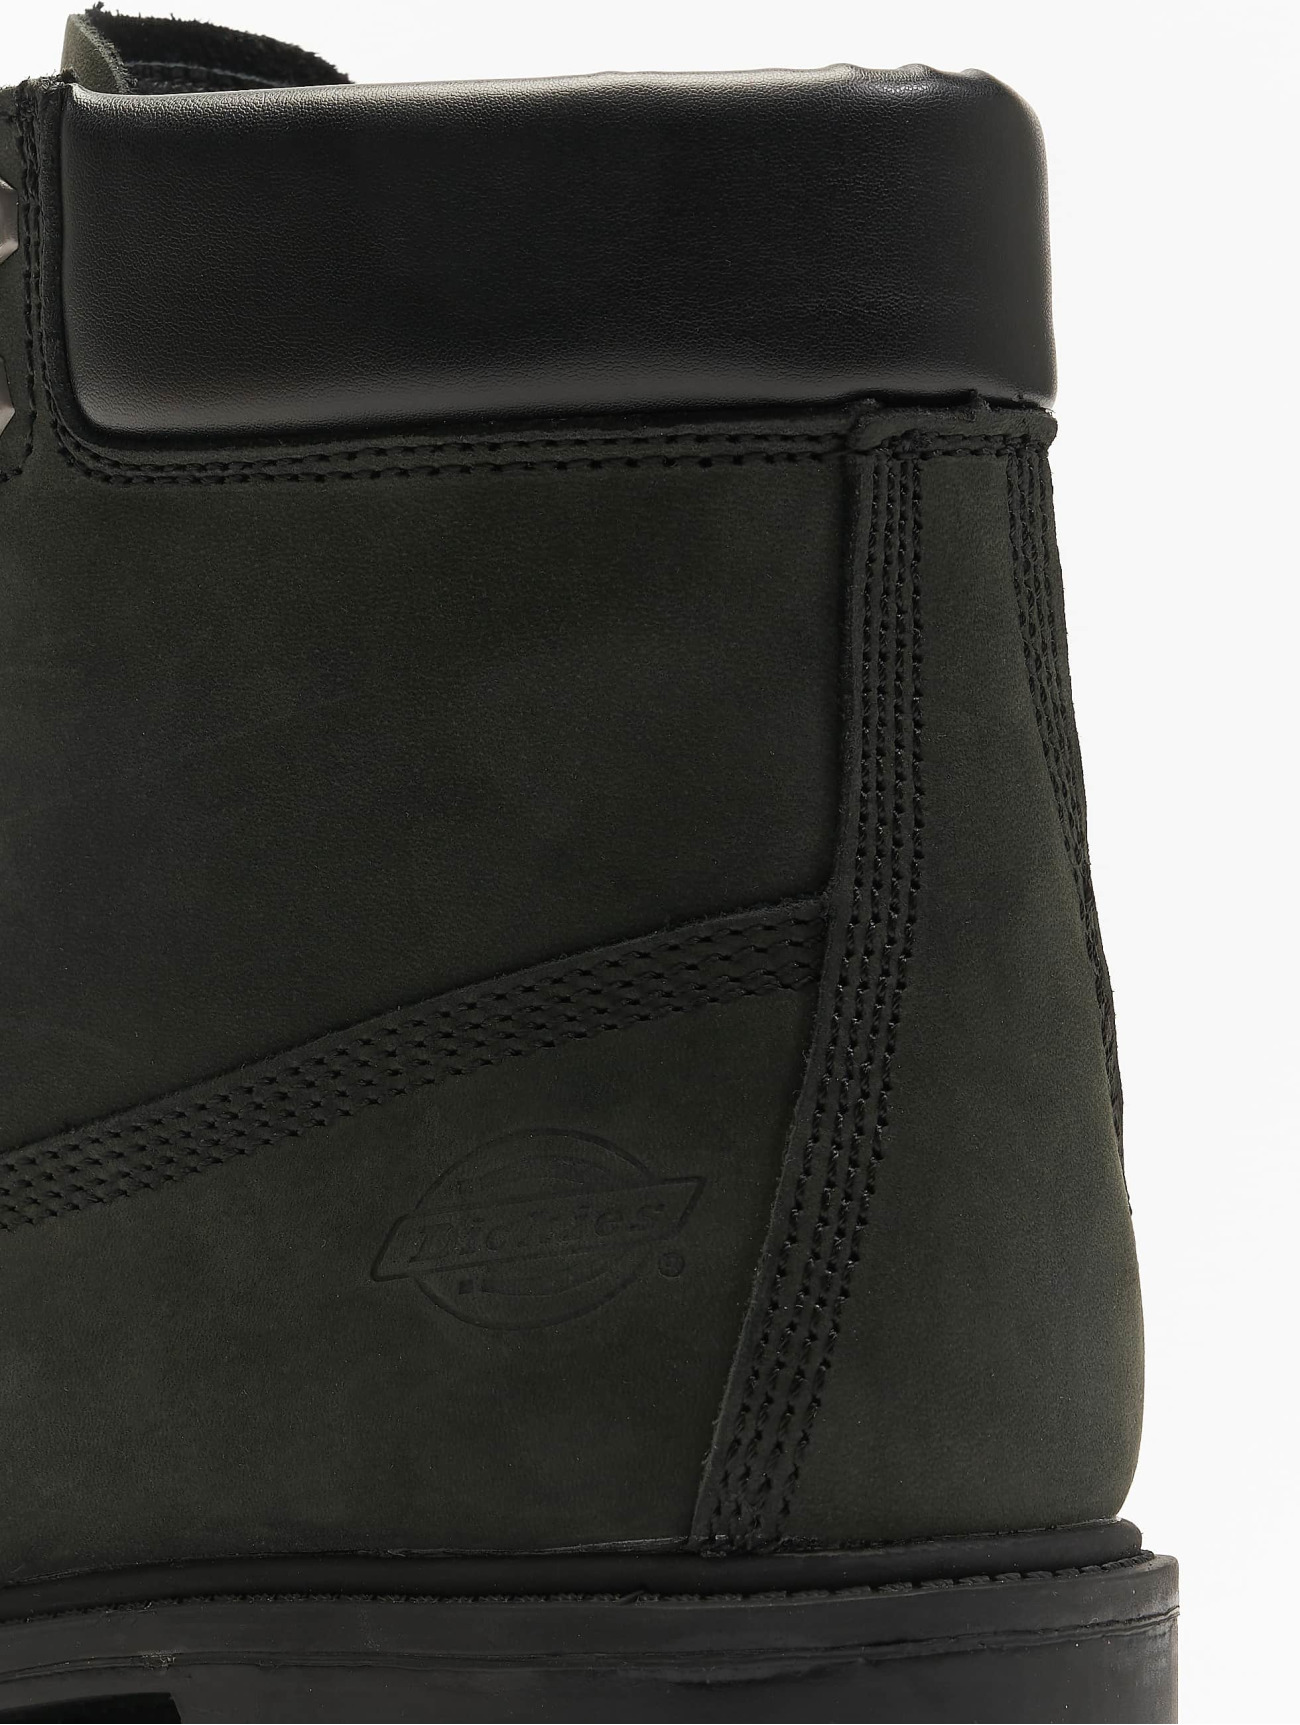 Dickies  Fort Worth   noir Homme Chaussures montantes  192183 Homme Chaussures